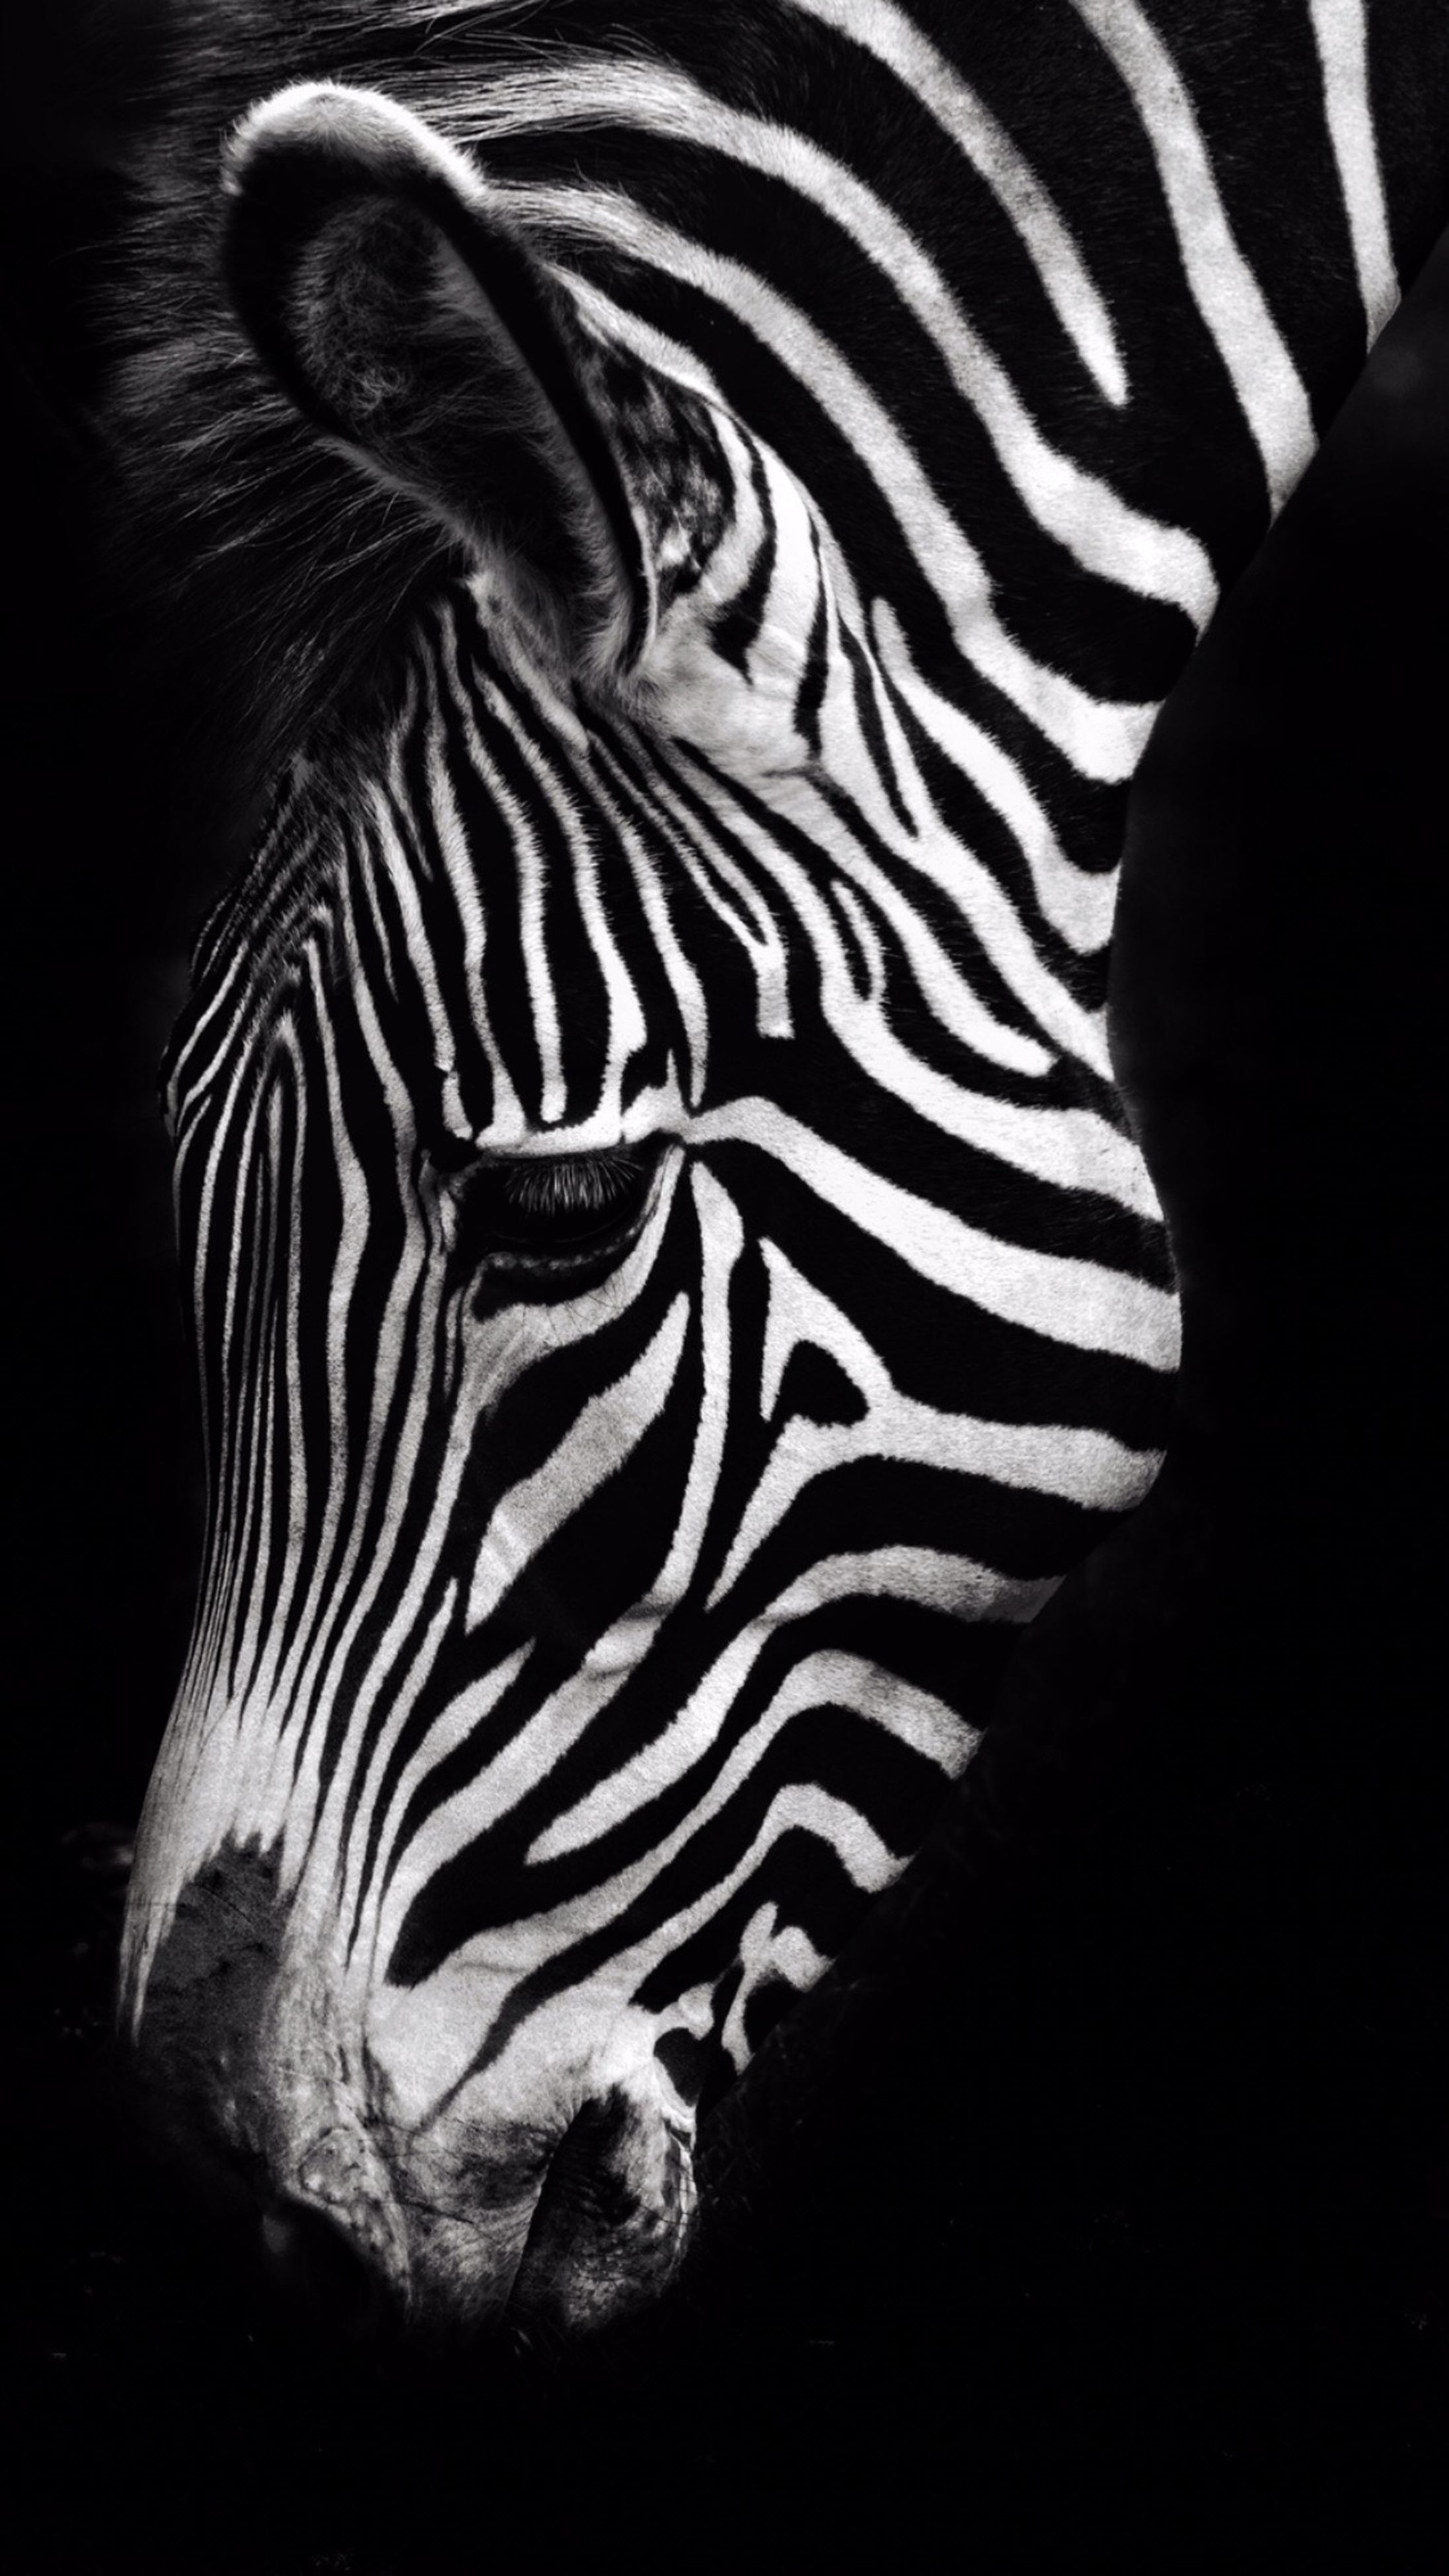 zebra, striped, one animal, animals in the wild, nature, animal head, mammal, beauty in nature, day, zoology, outdoors, no people